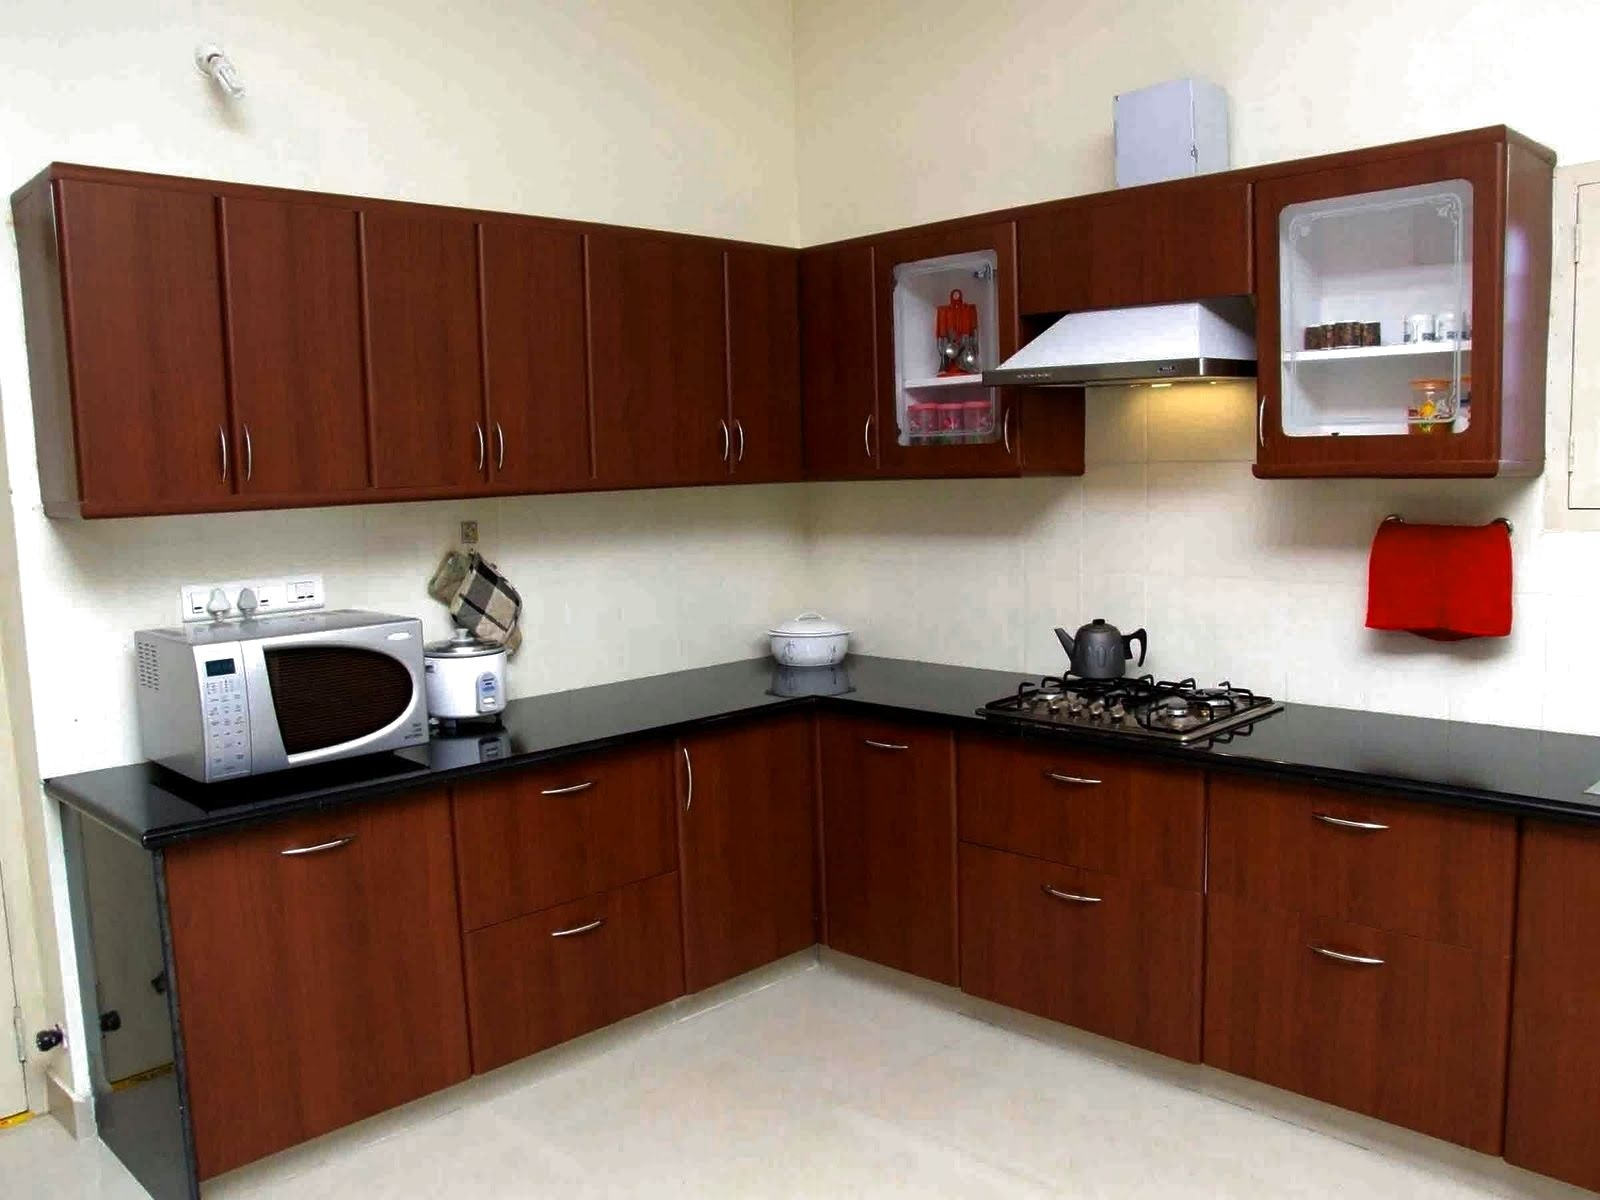 Permalink to Kitchen Cabinets Design Pics